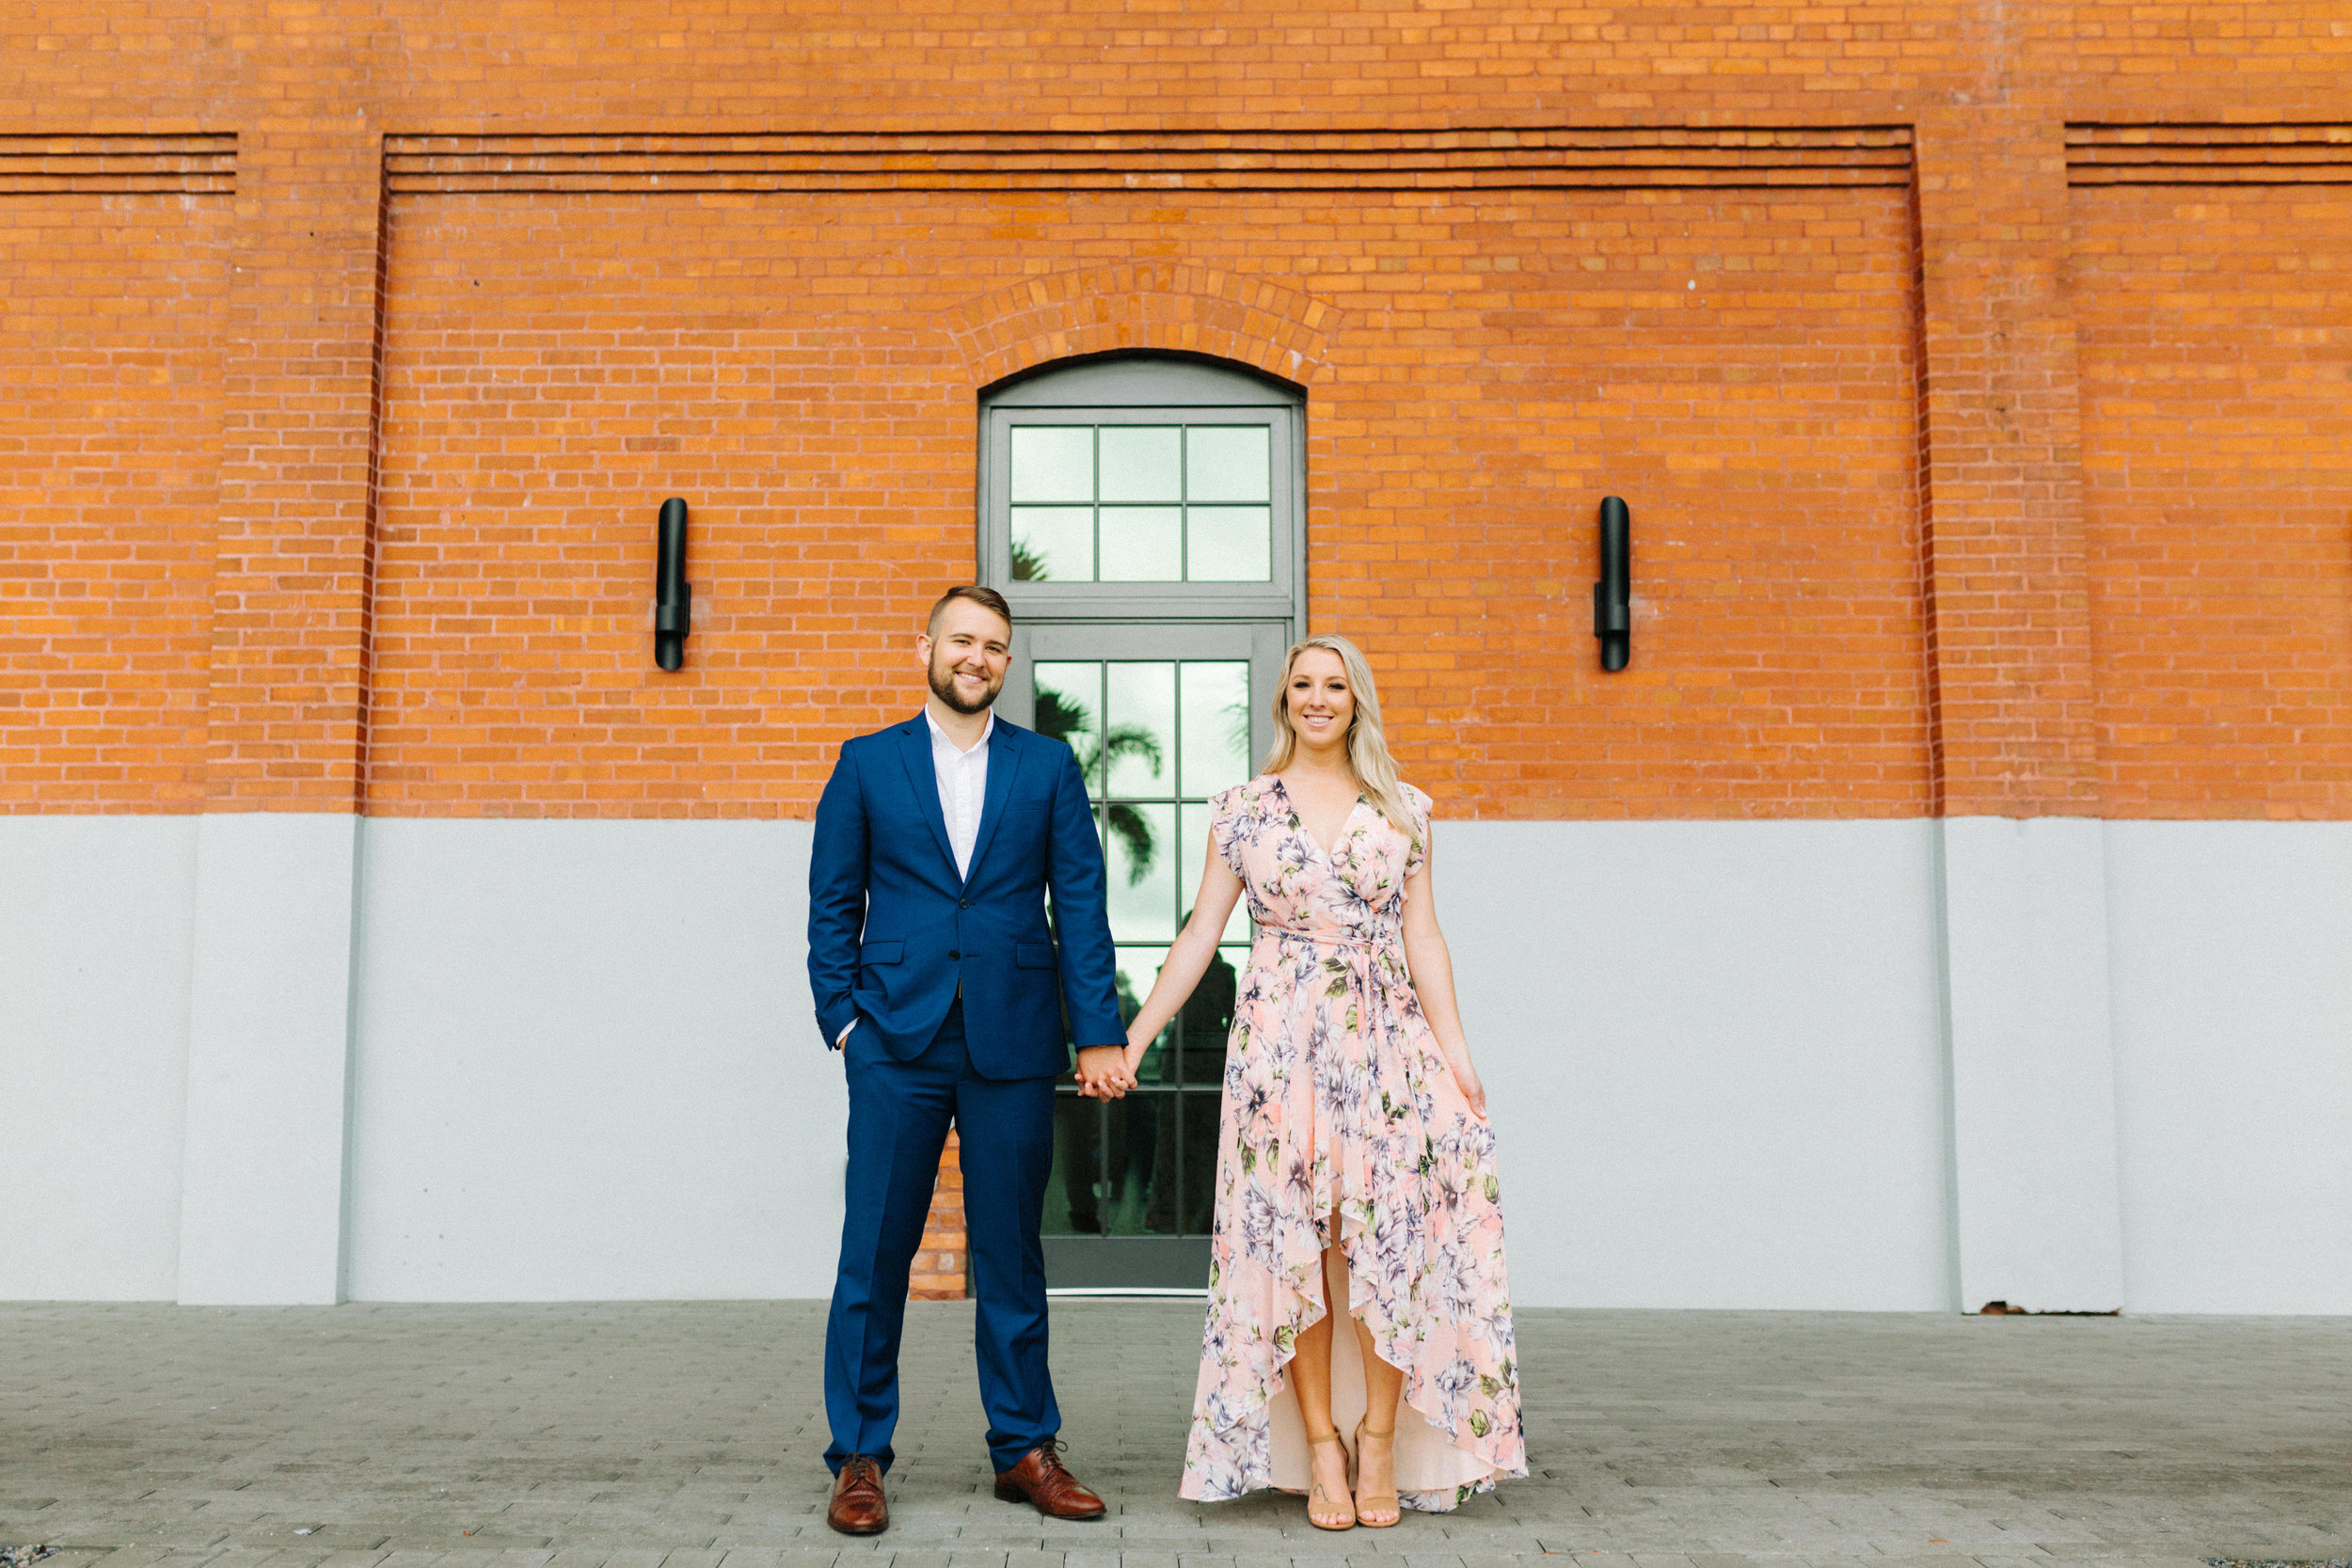 Kyle & Victoria's Engagement Session - Jake & Katie Photography_109.jpg